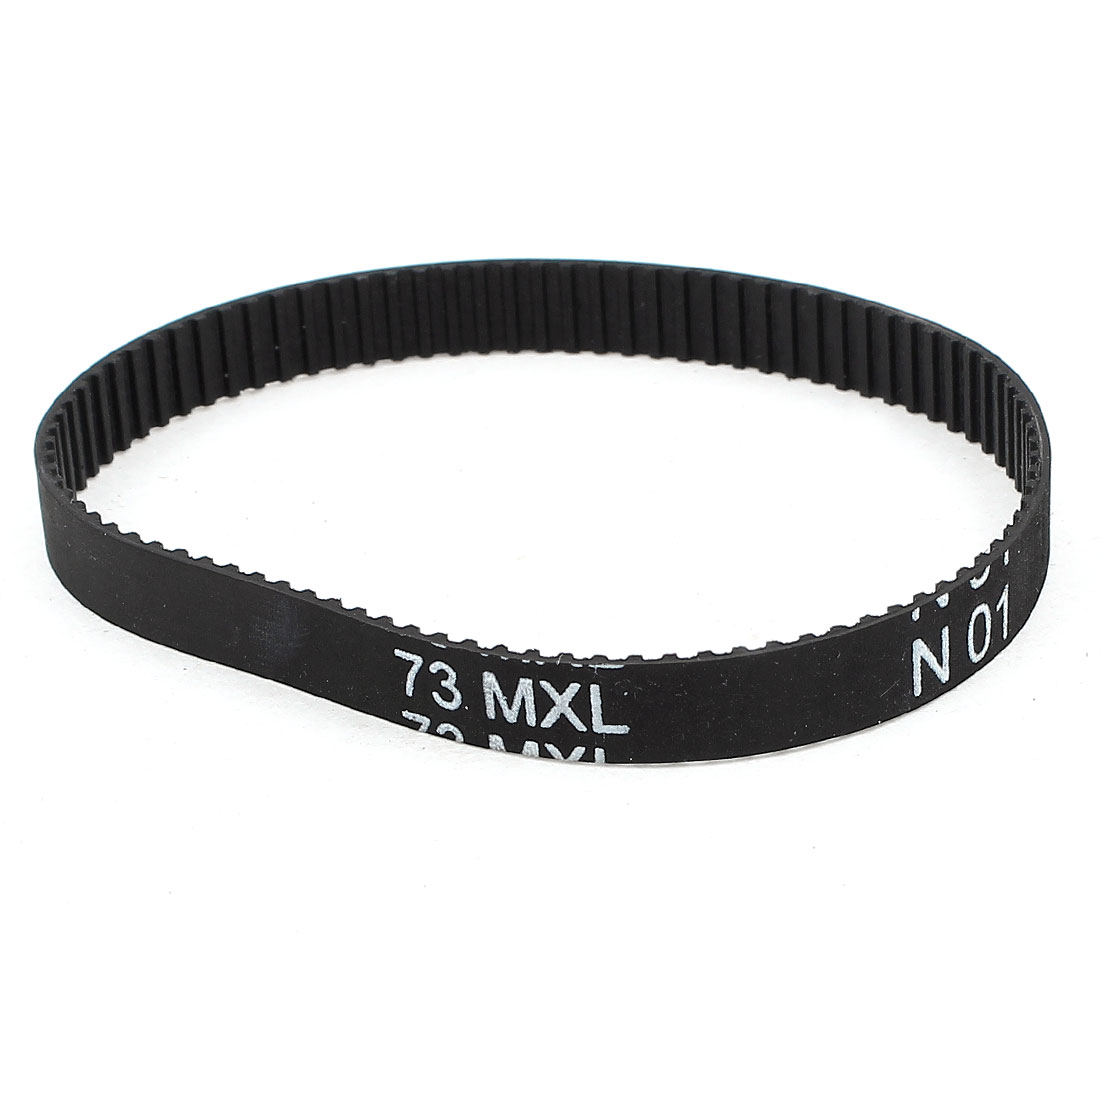 73MXL025 92 Teeth 2.032mm Pitch 6.4mm Width 186.94mm Industrial Timing Belt